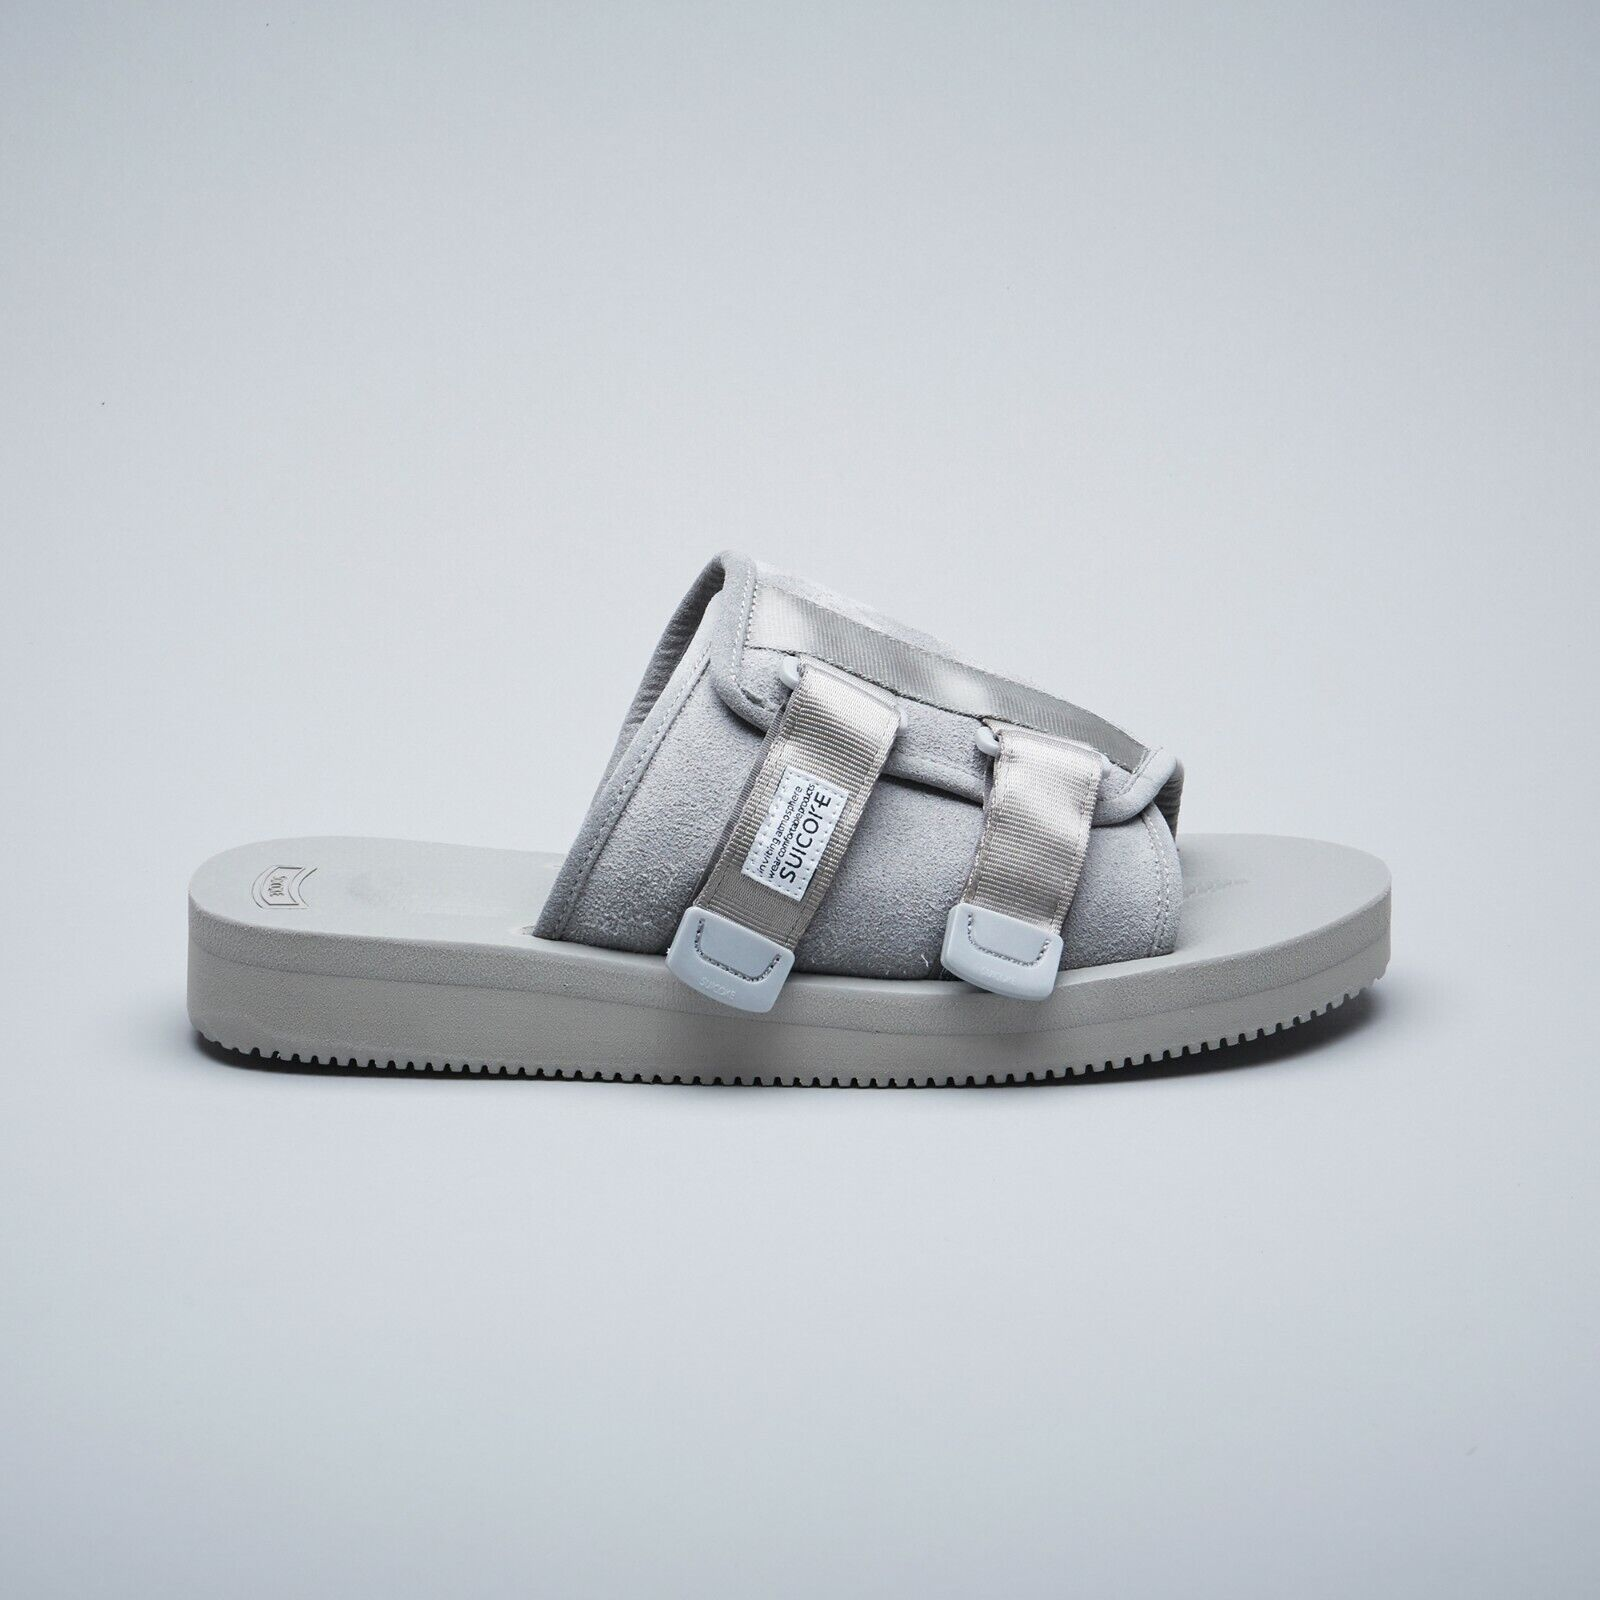 61b2490a61f Suicoke SS19 OG-081VS / KAW-VS Gray Grey Vibram Cow Suede Leather Sandals  Slides